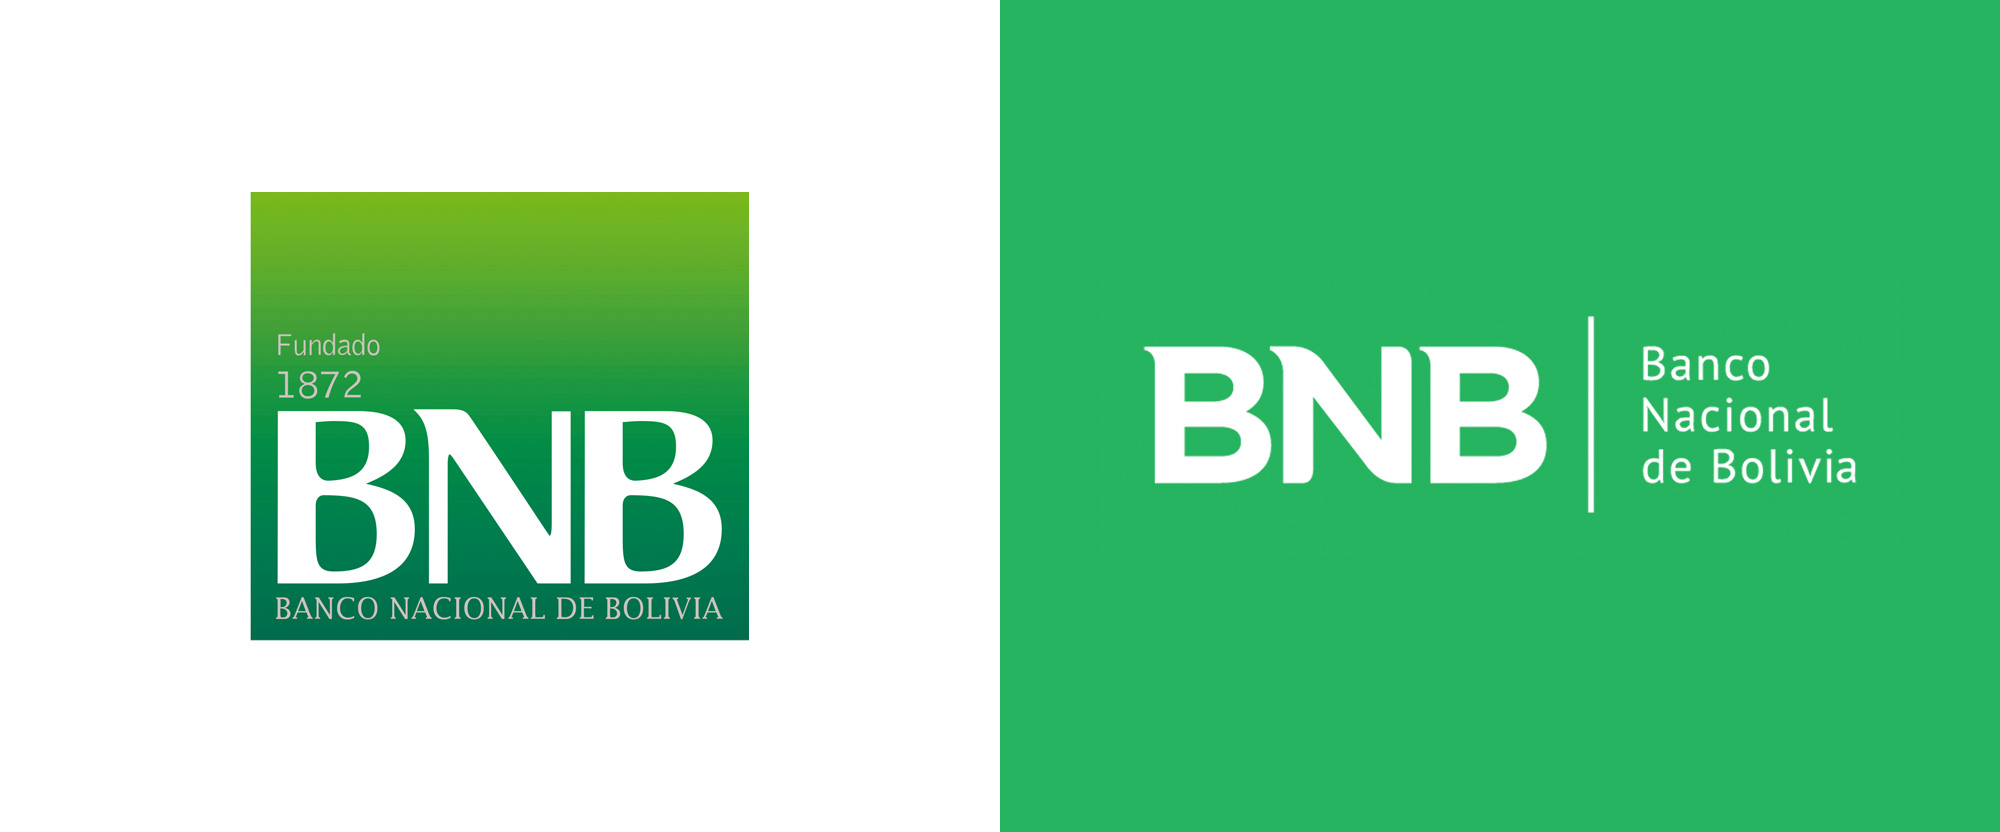 New Logo for Banco Nacional de Bolivia